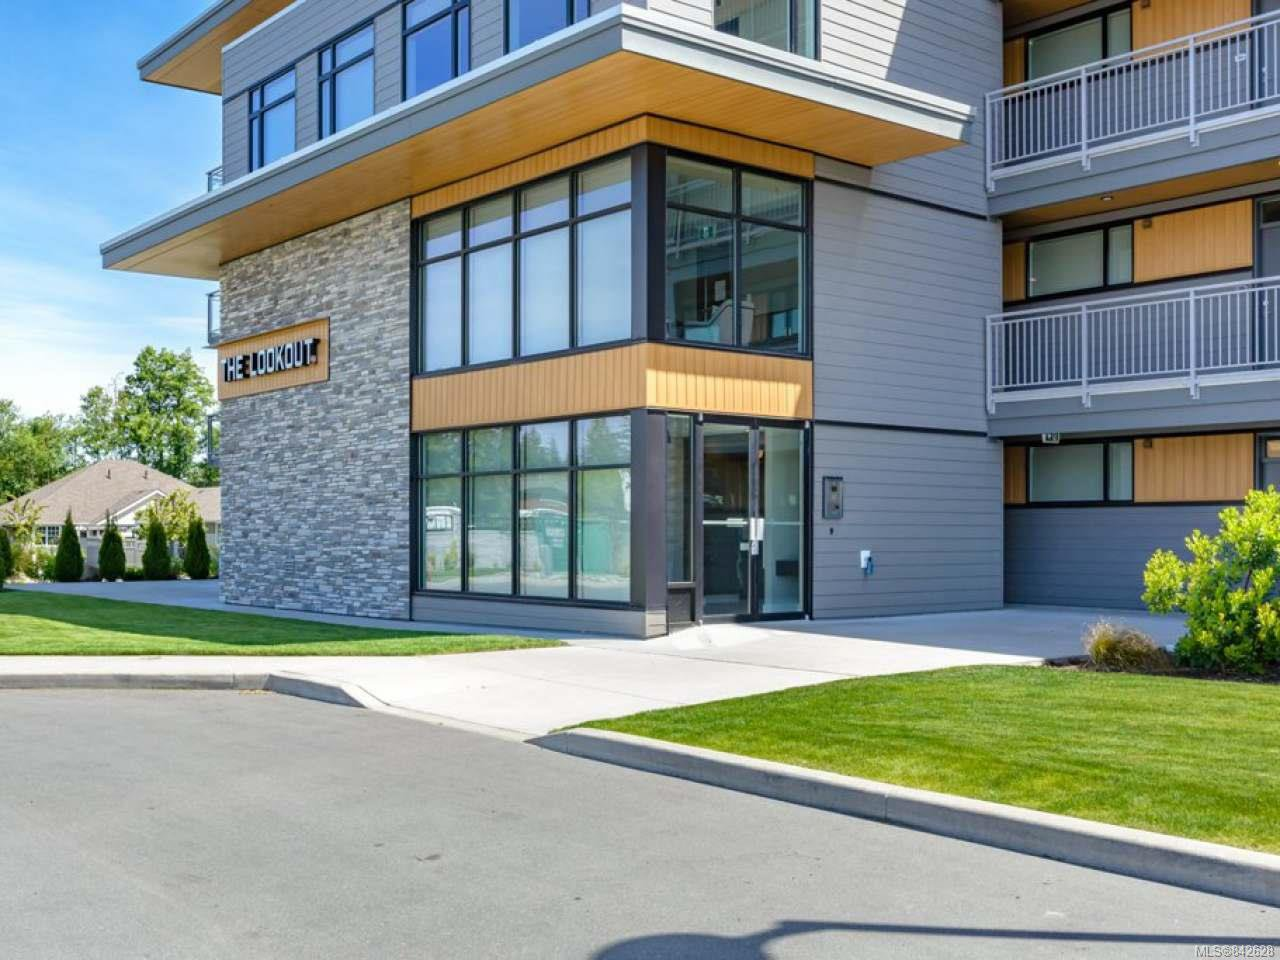 Photo 37: Photos: 101 2777 North Beach Dr in CAMPBELL RIVER: CR Campbell River North Condo Apartment for sale (Campbell River)  : MLS®# 842628